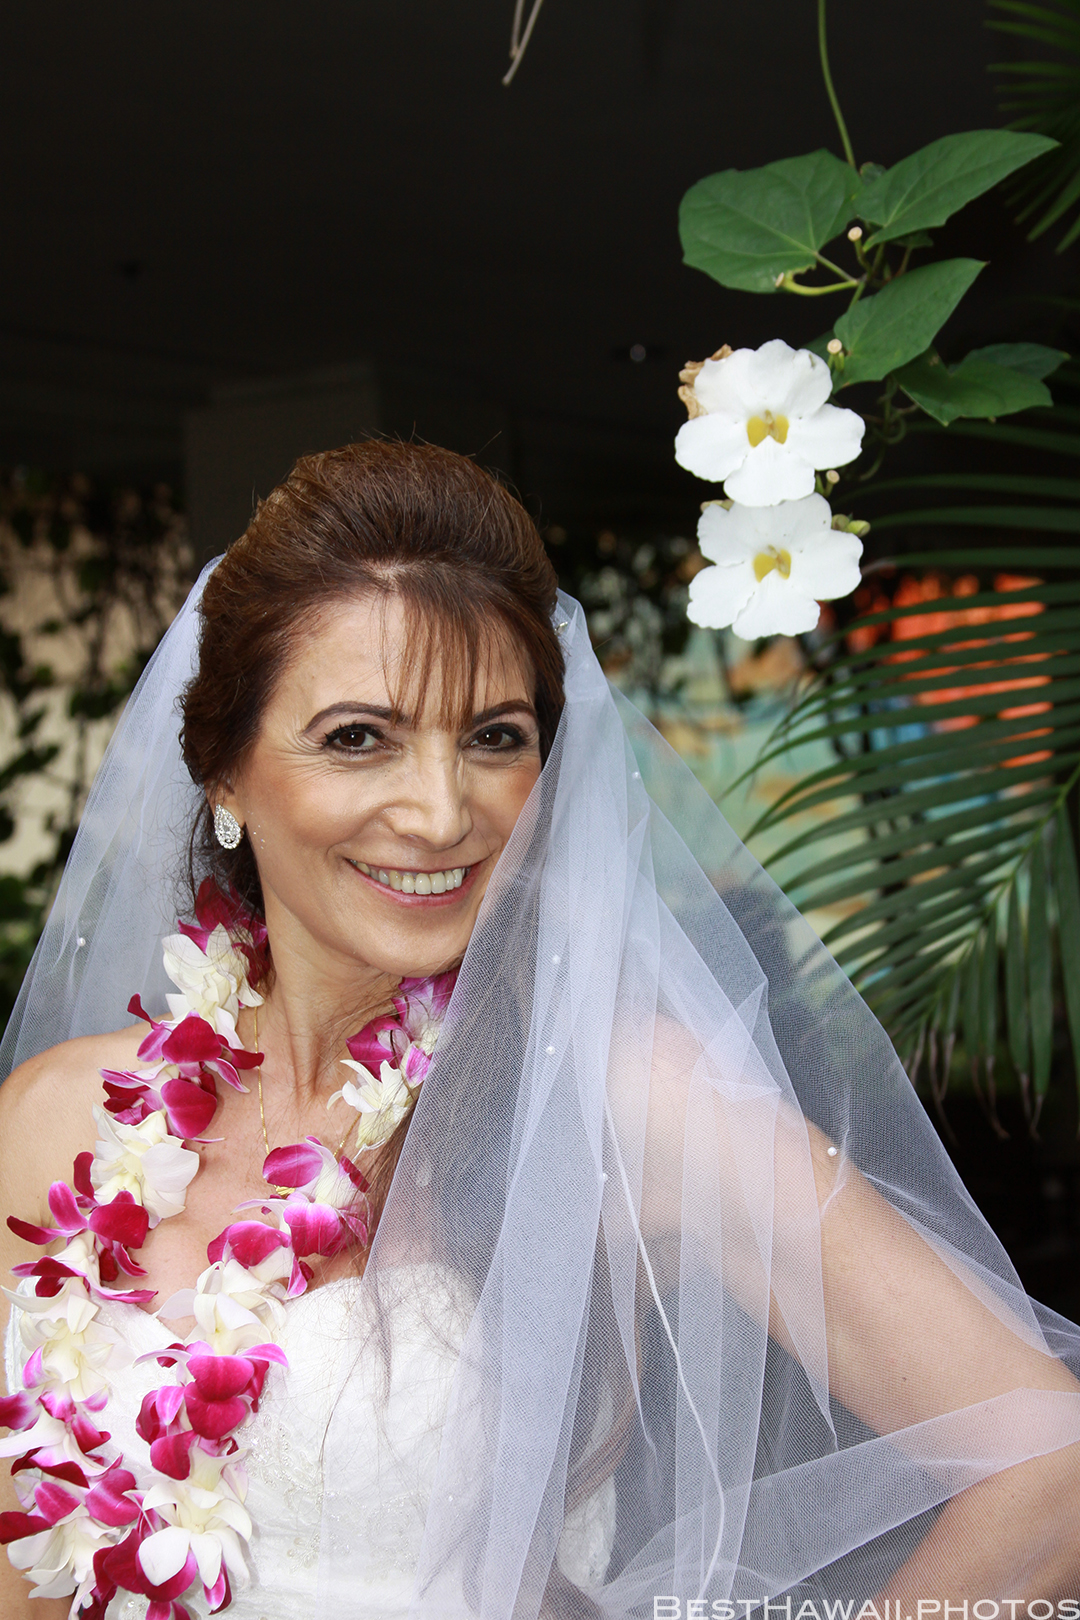 Wedding Photos at Hilton Hawaiian Village by Pasha www.BestHawaii.photos 121820158648